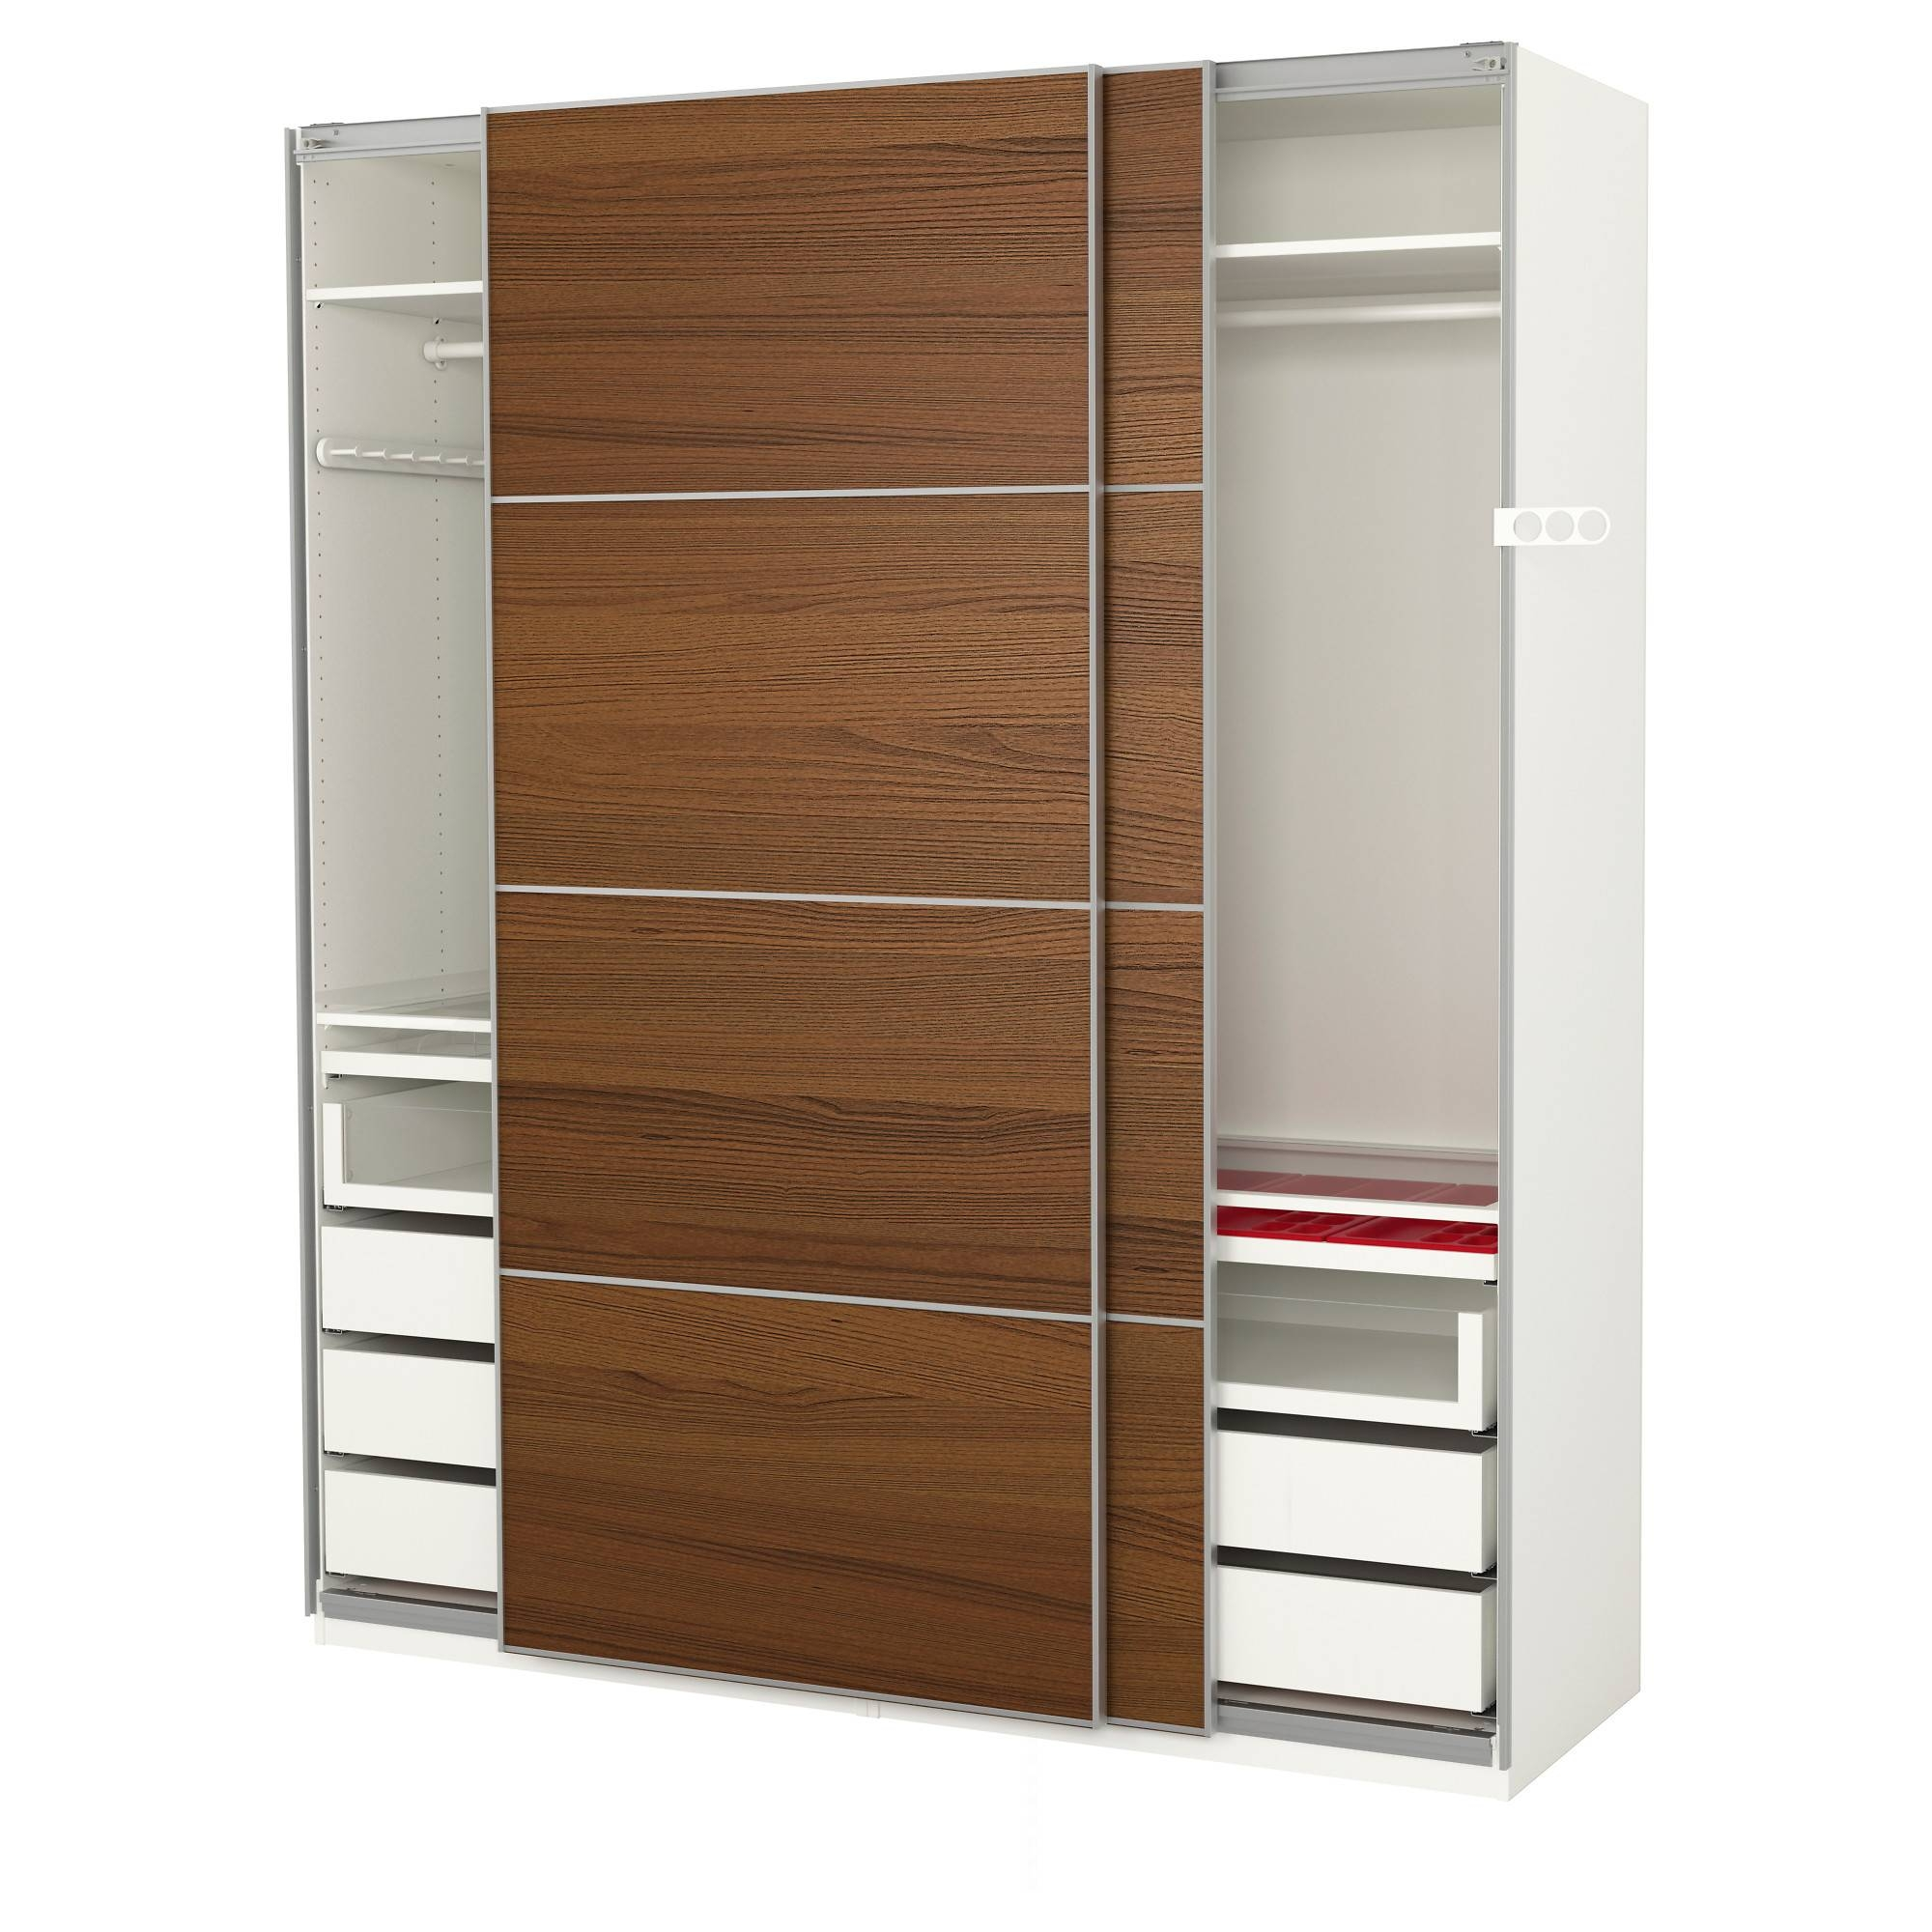 Wardrobes - Pax System - Ikea pertaining to Double Wardrobe With Drawers And Shelves (Image 26 of 30)